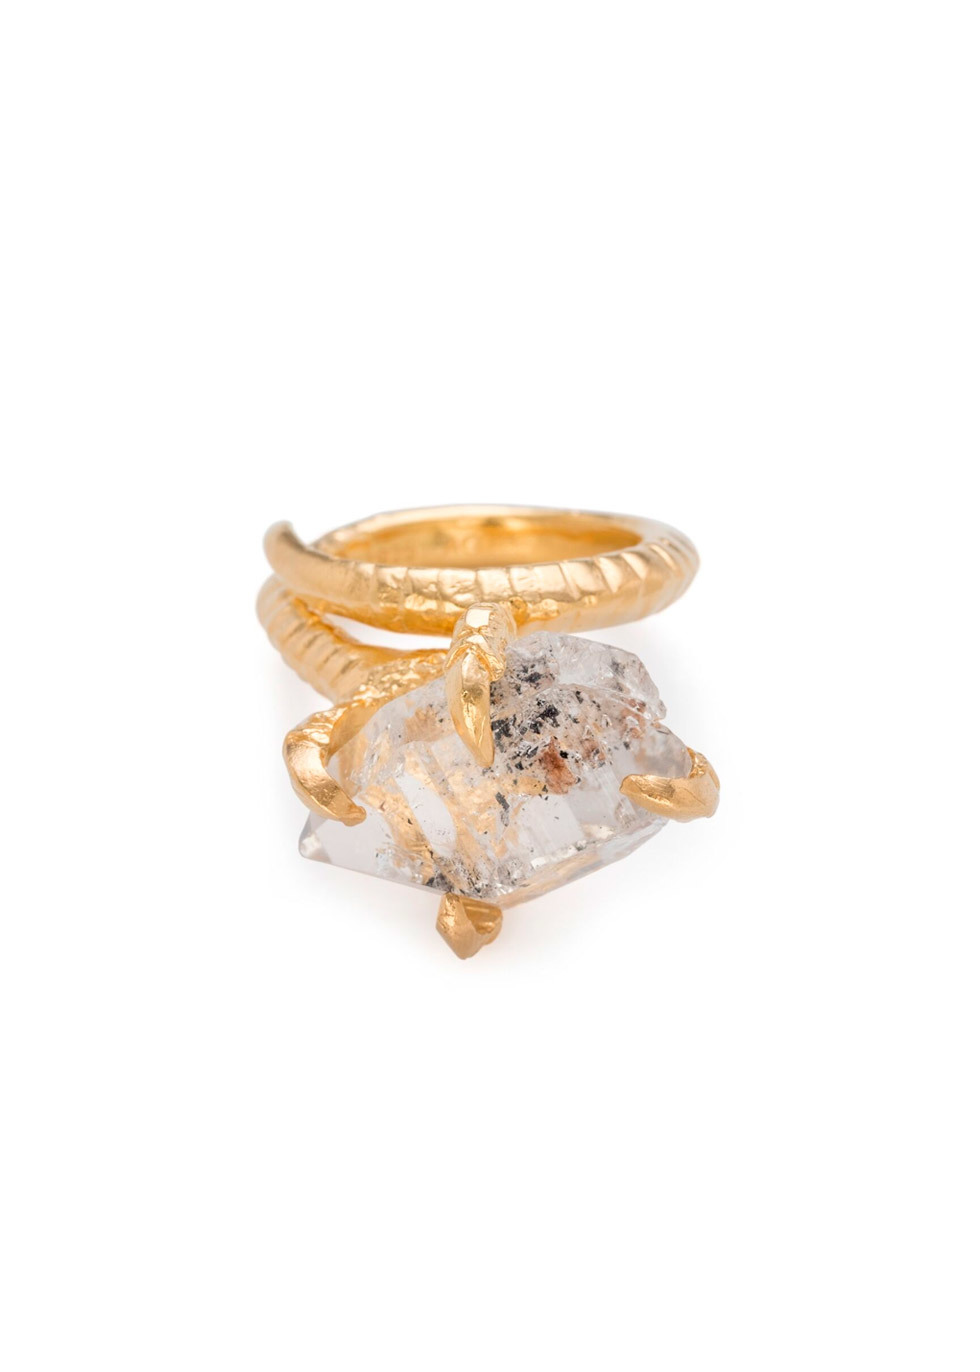 BJ0RG JEWELLERY HERKIMER CLAW RING GOLD SIZE L